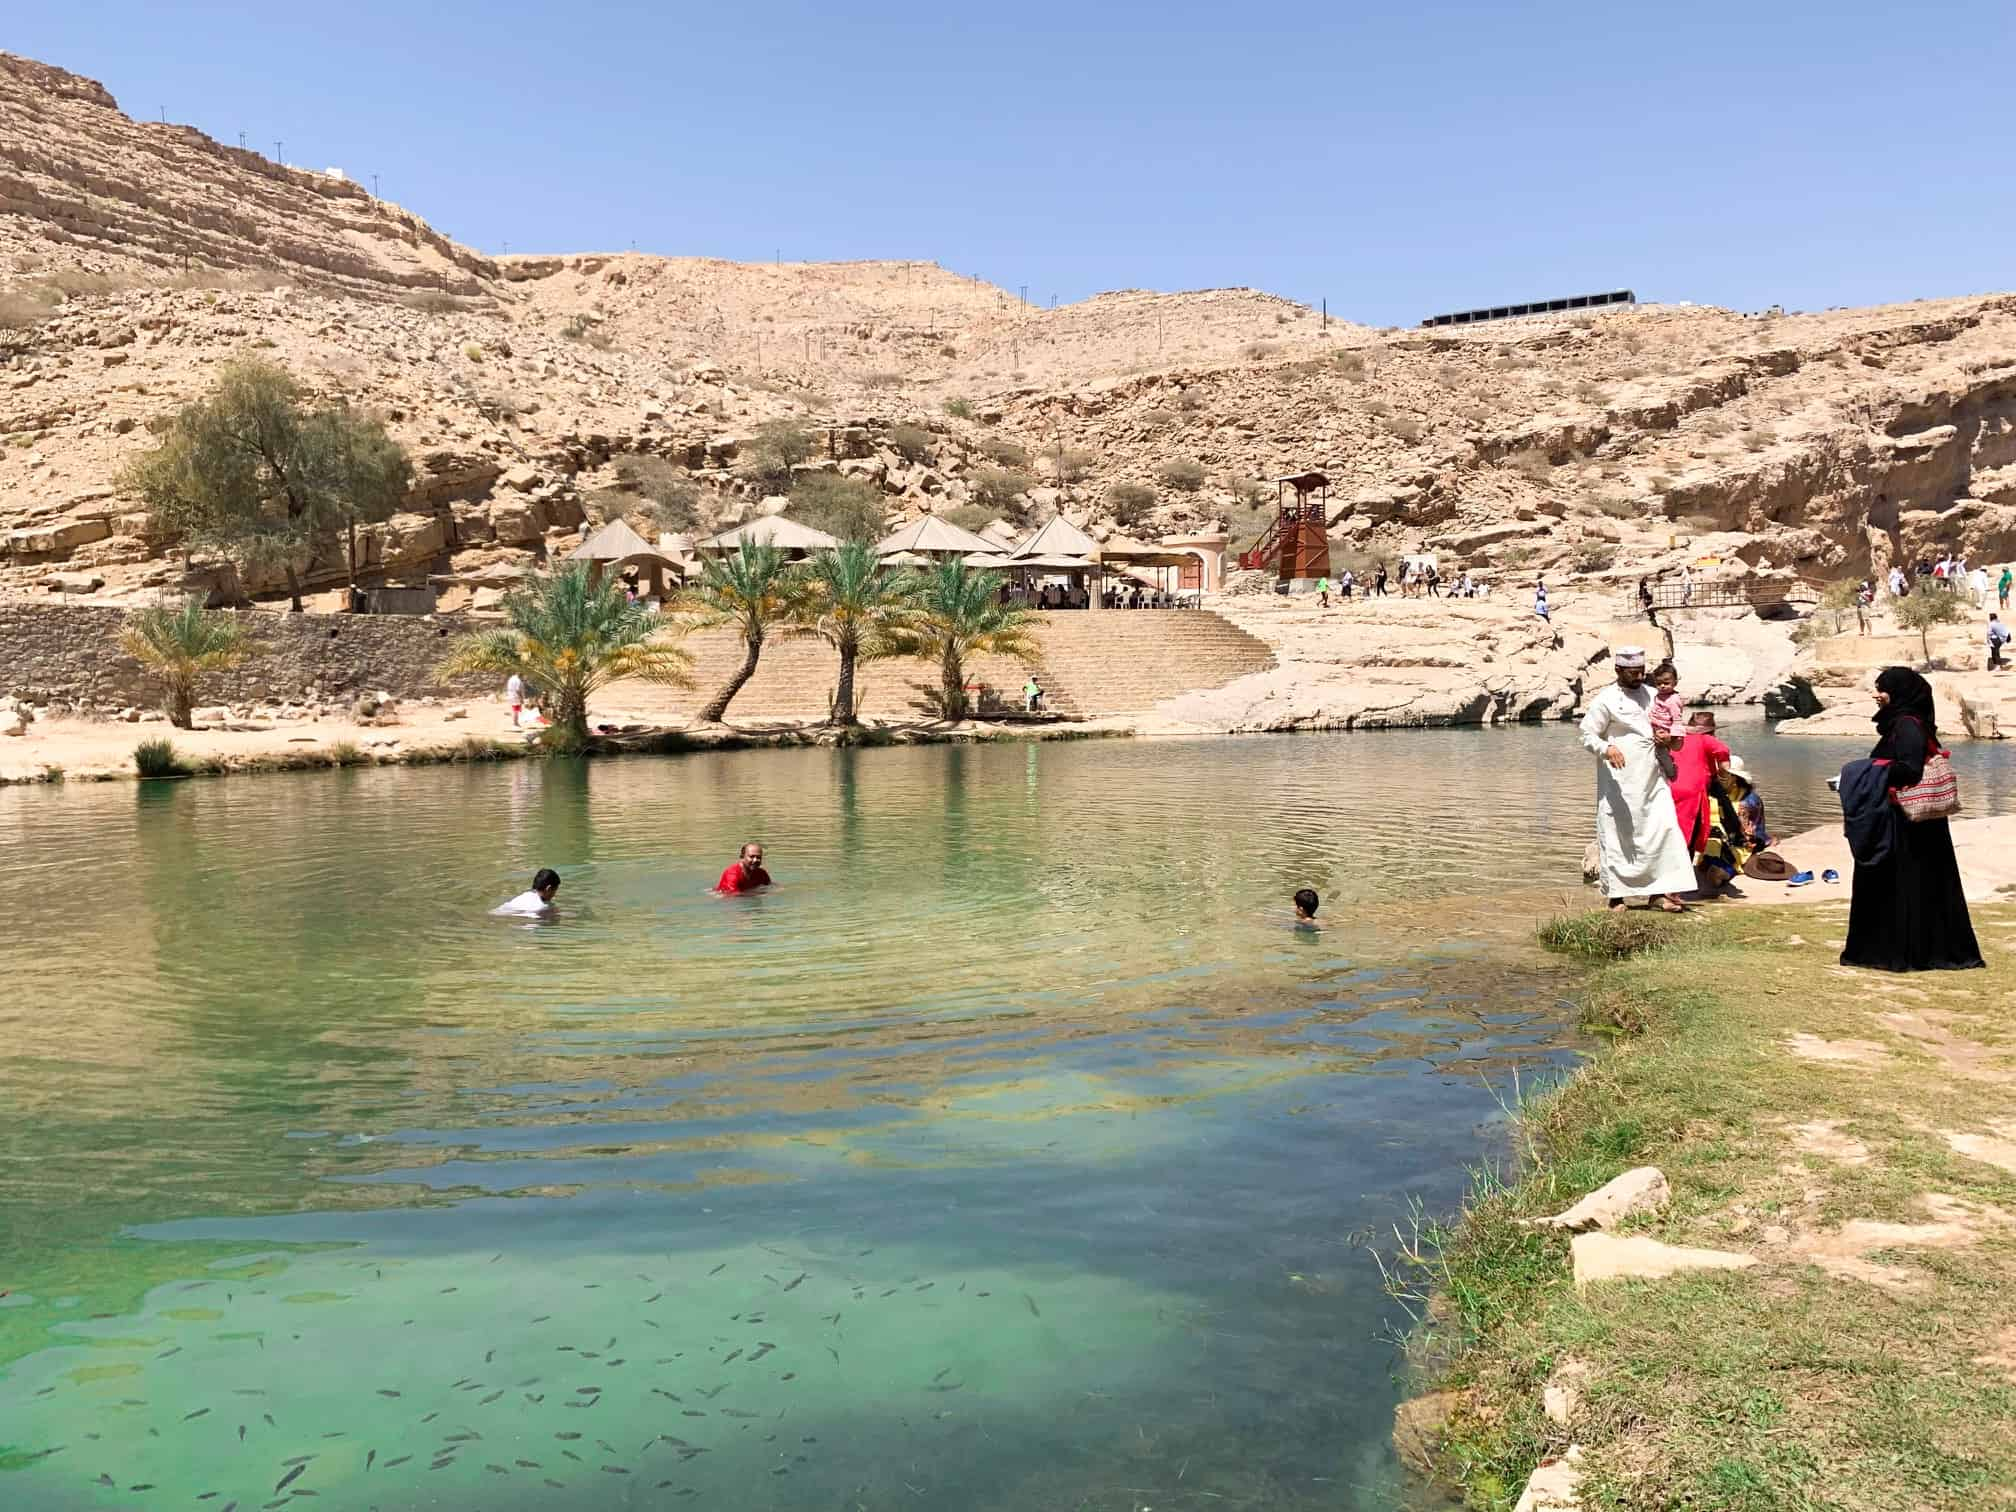 Locals swimming at Wadi Bani Khalid